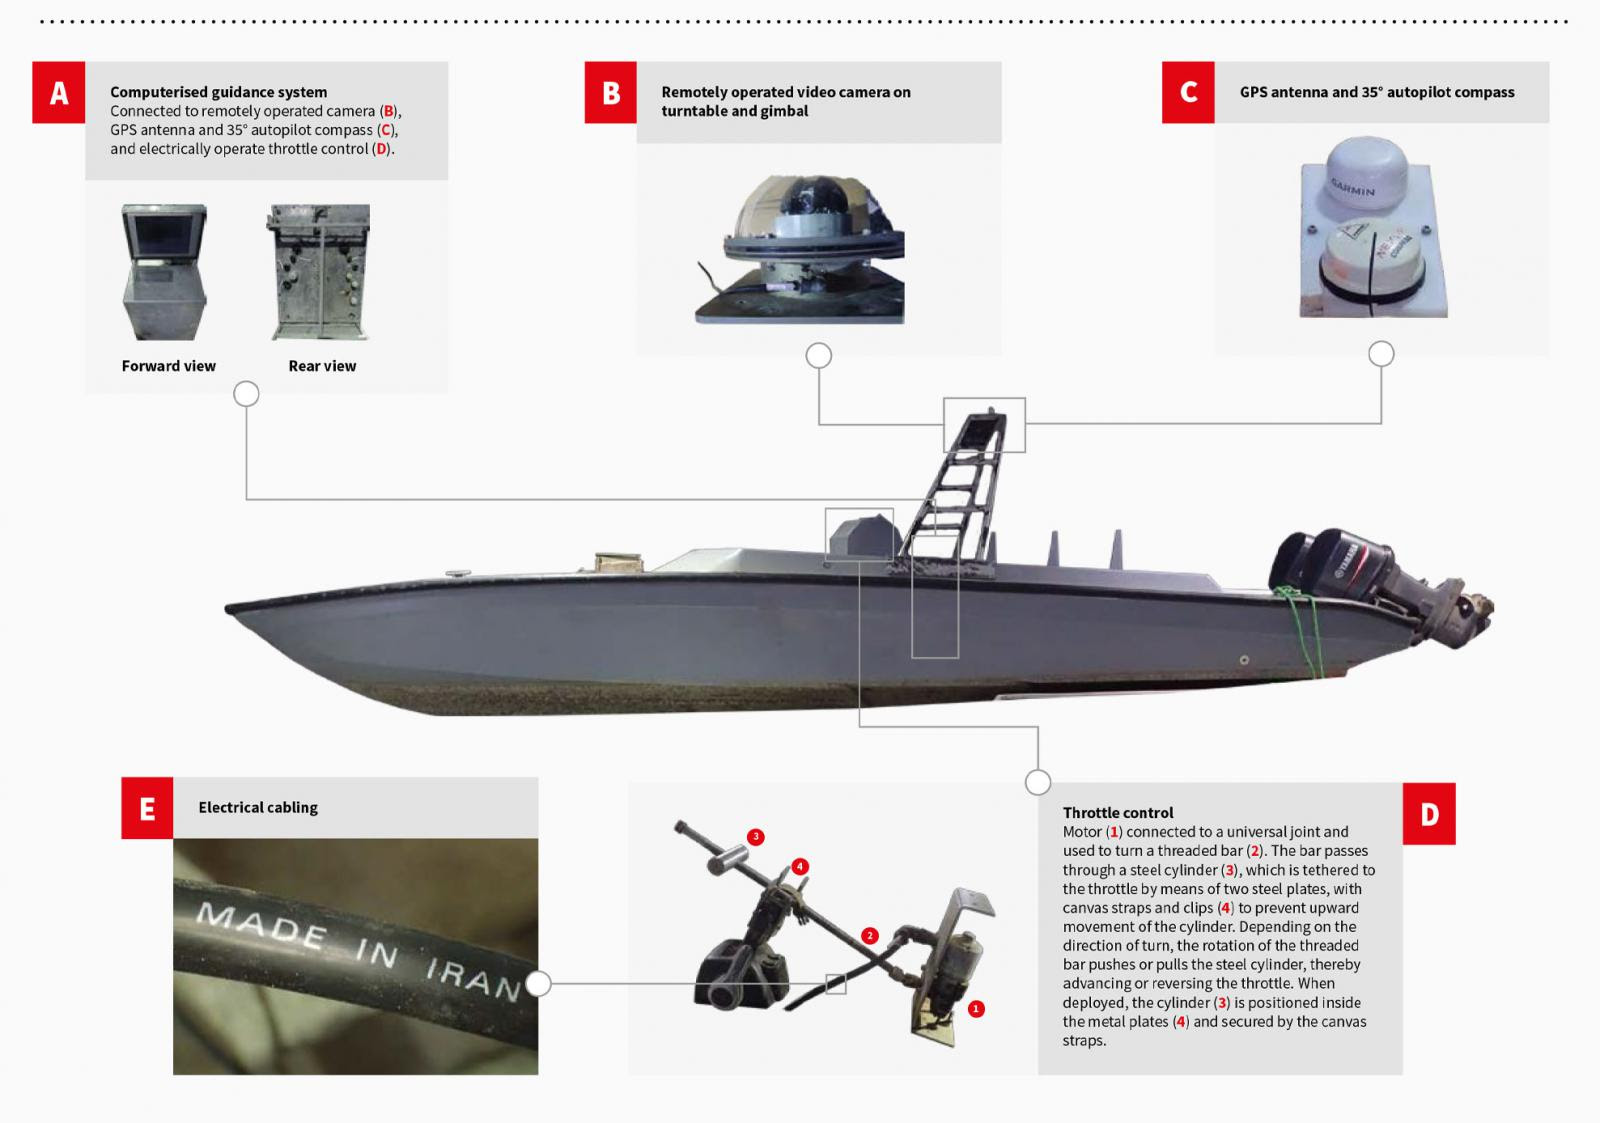 Climb aboard a water-borne improvised explosive device